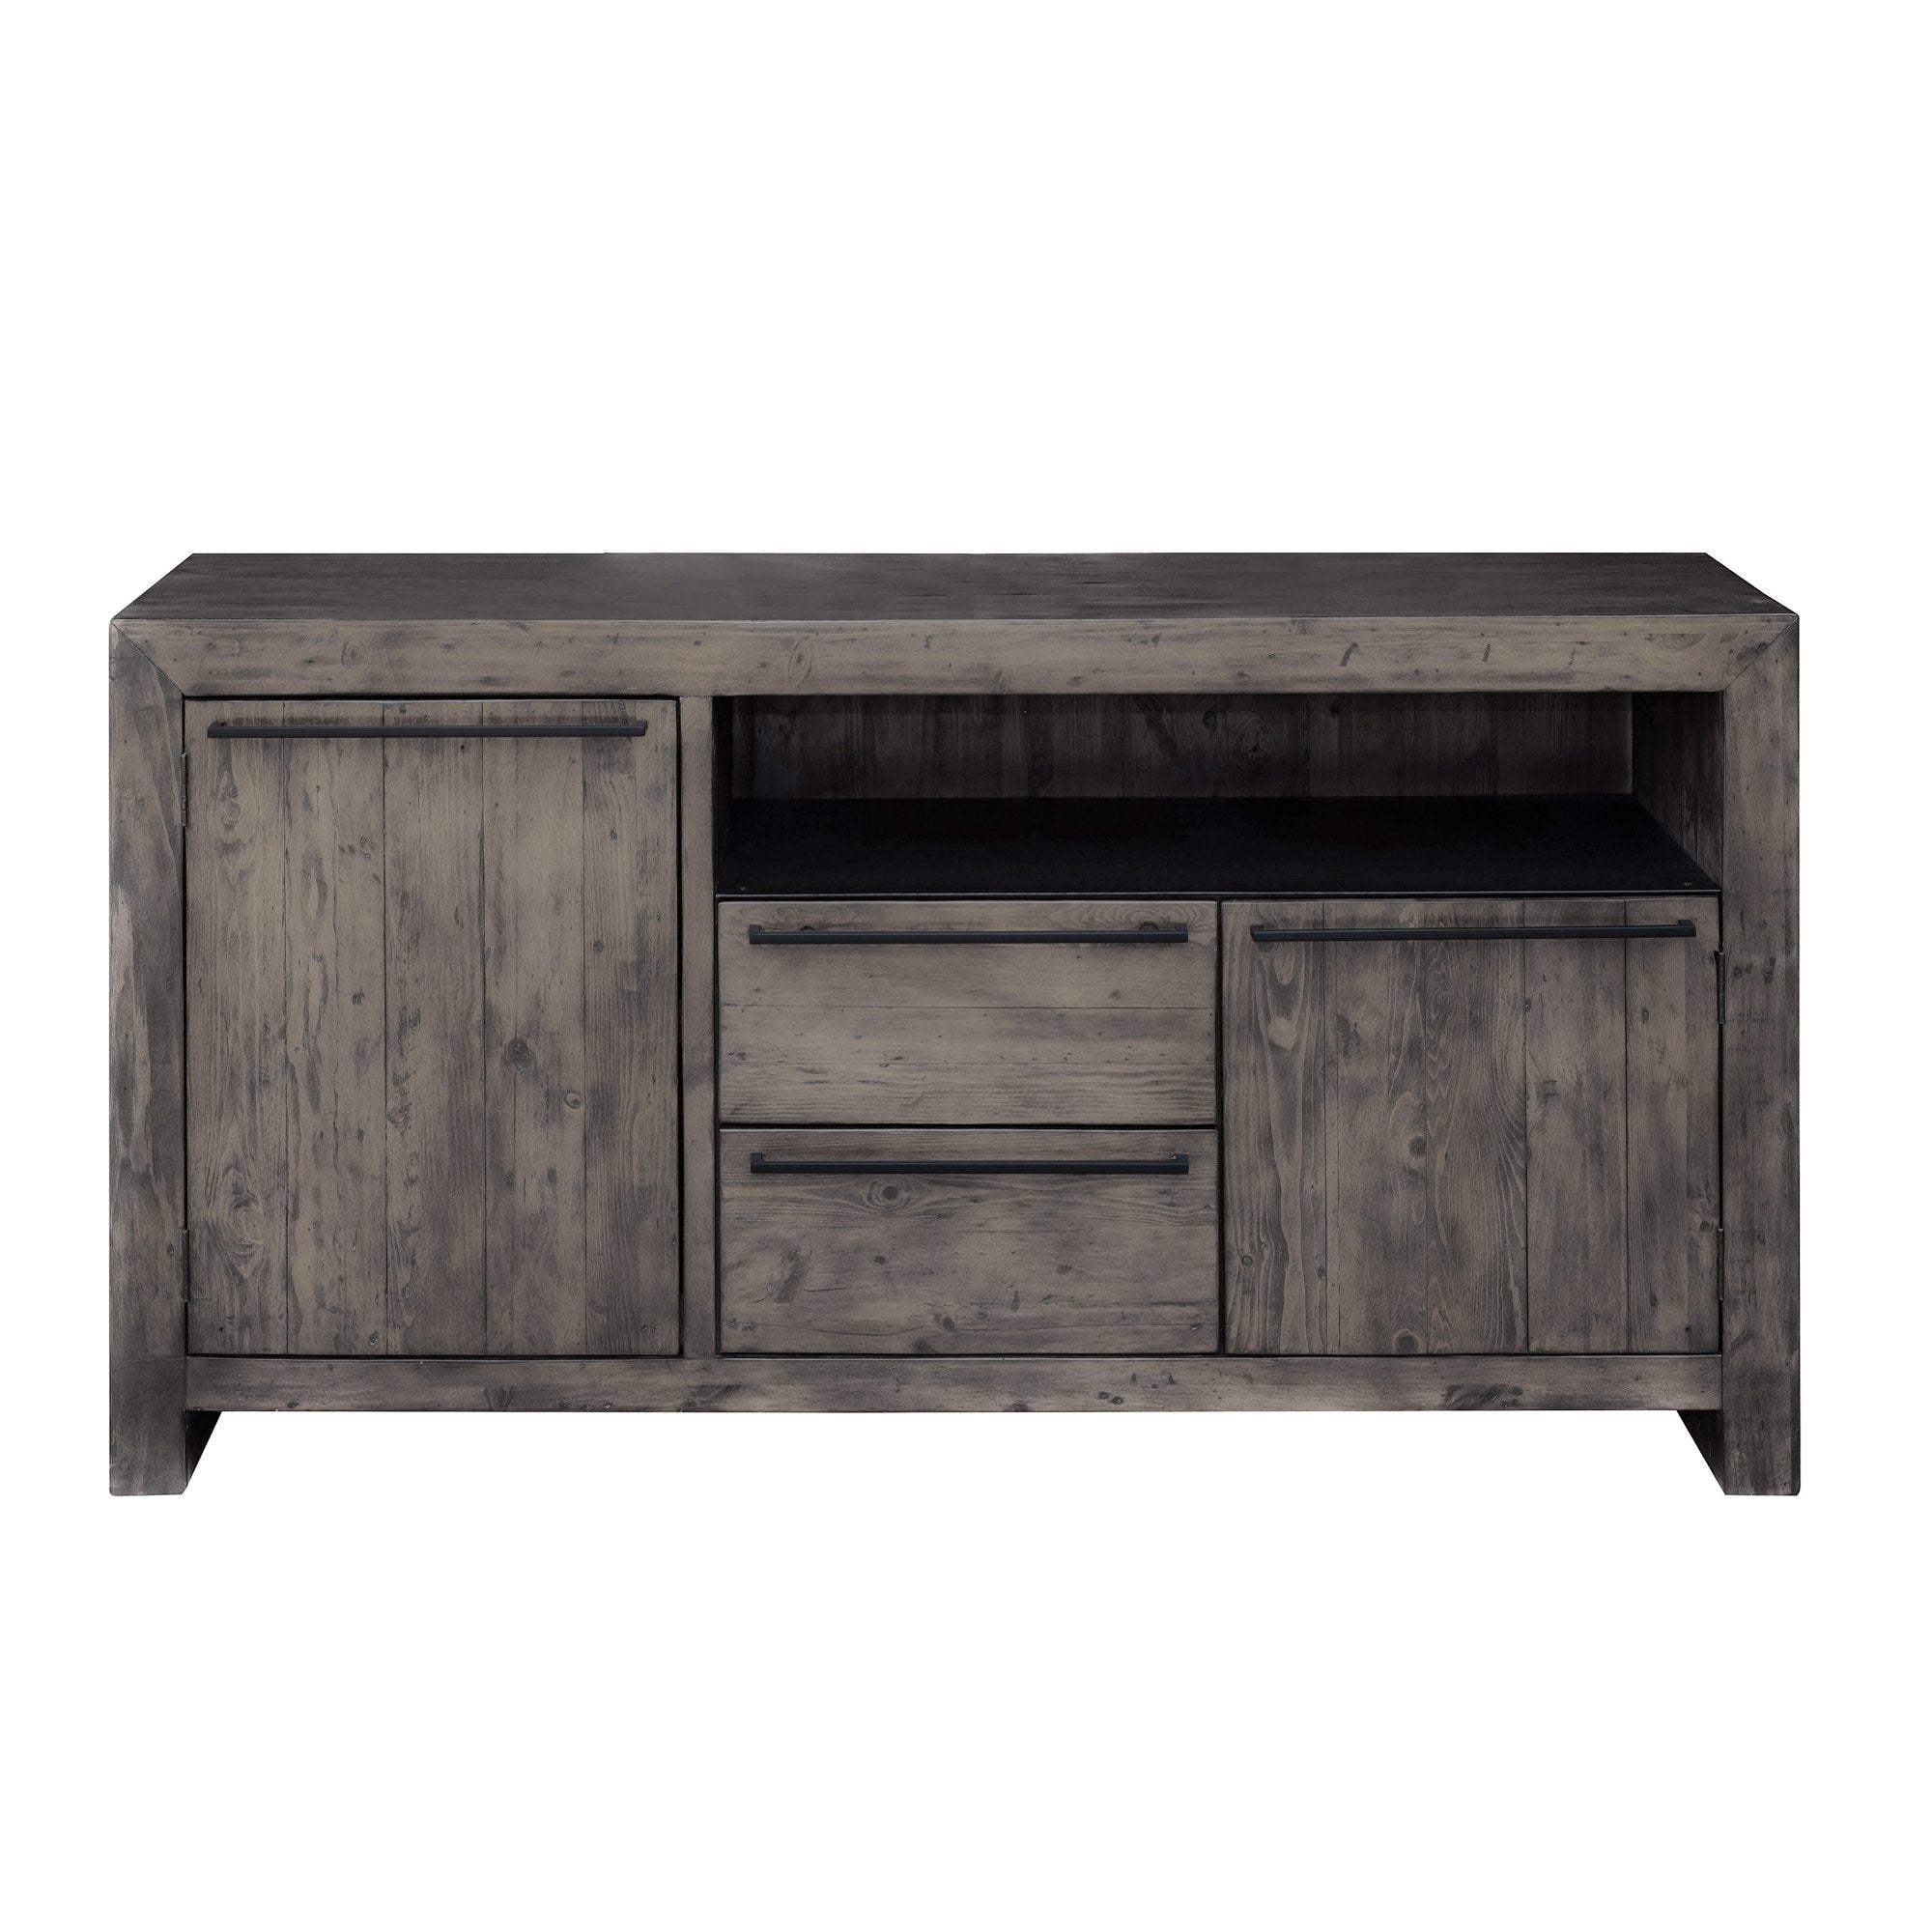 Picture of New York Modern Sideboard - Ash Grey